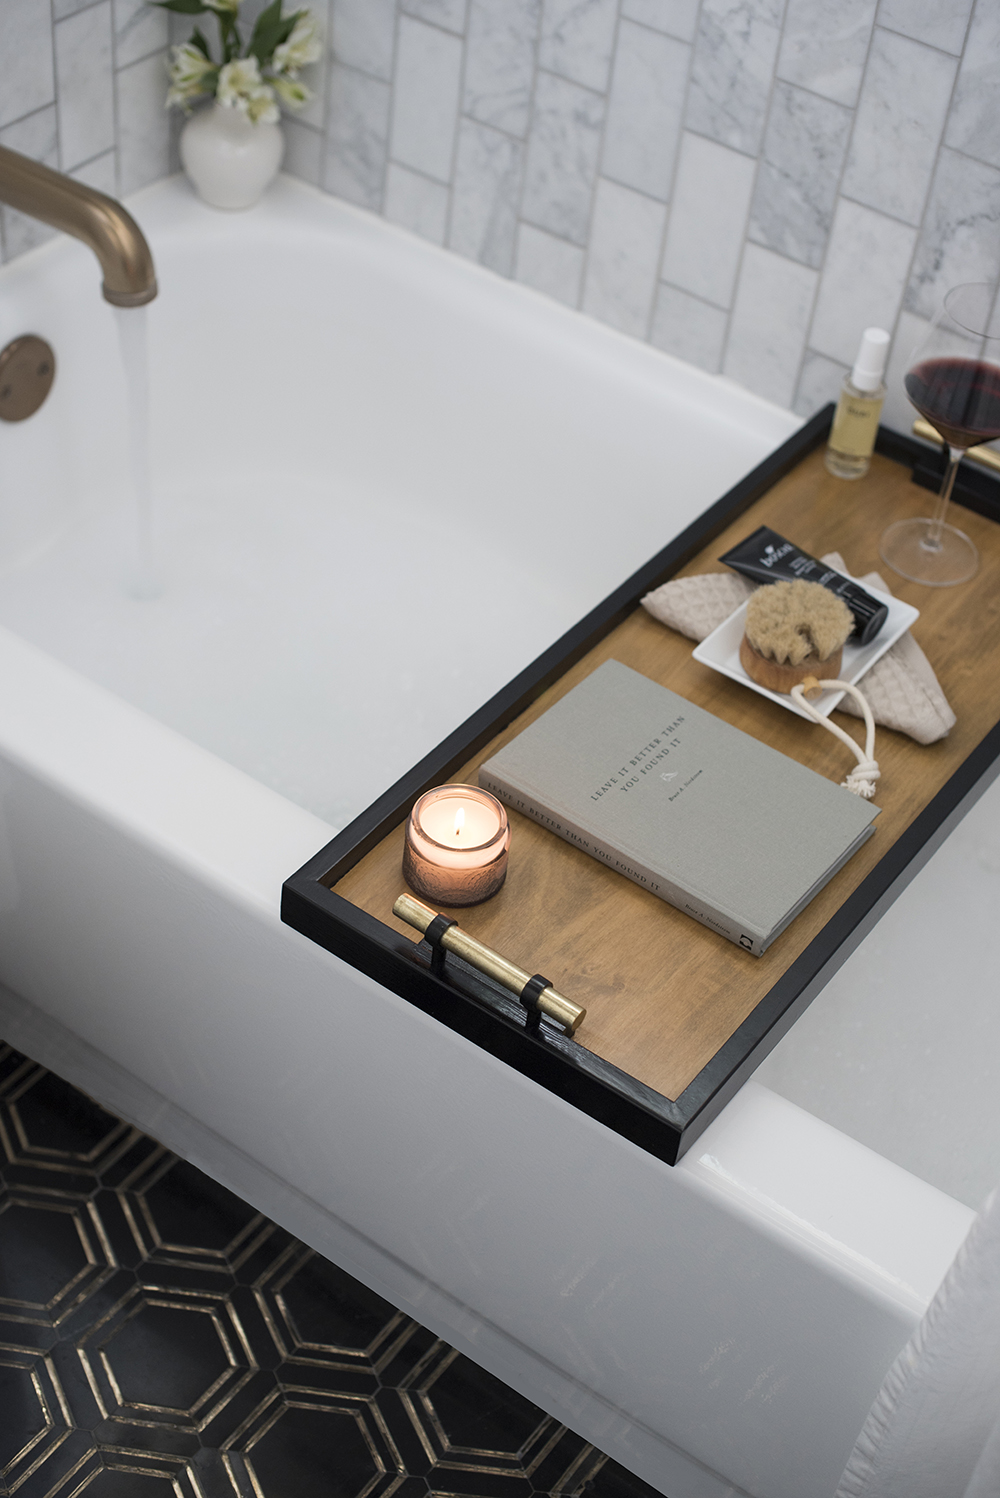 DIY Bath Caddy Tray - roomfortuesday.com